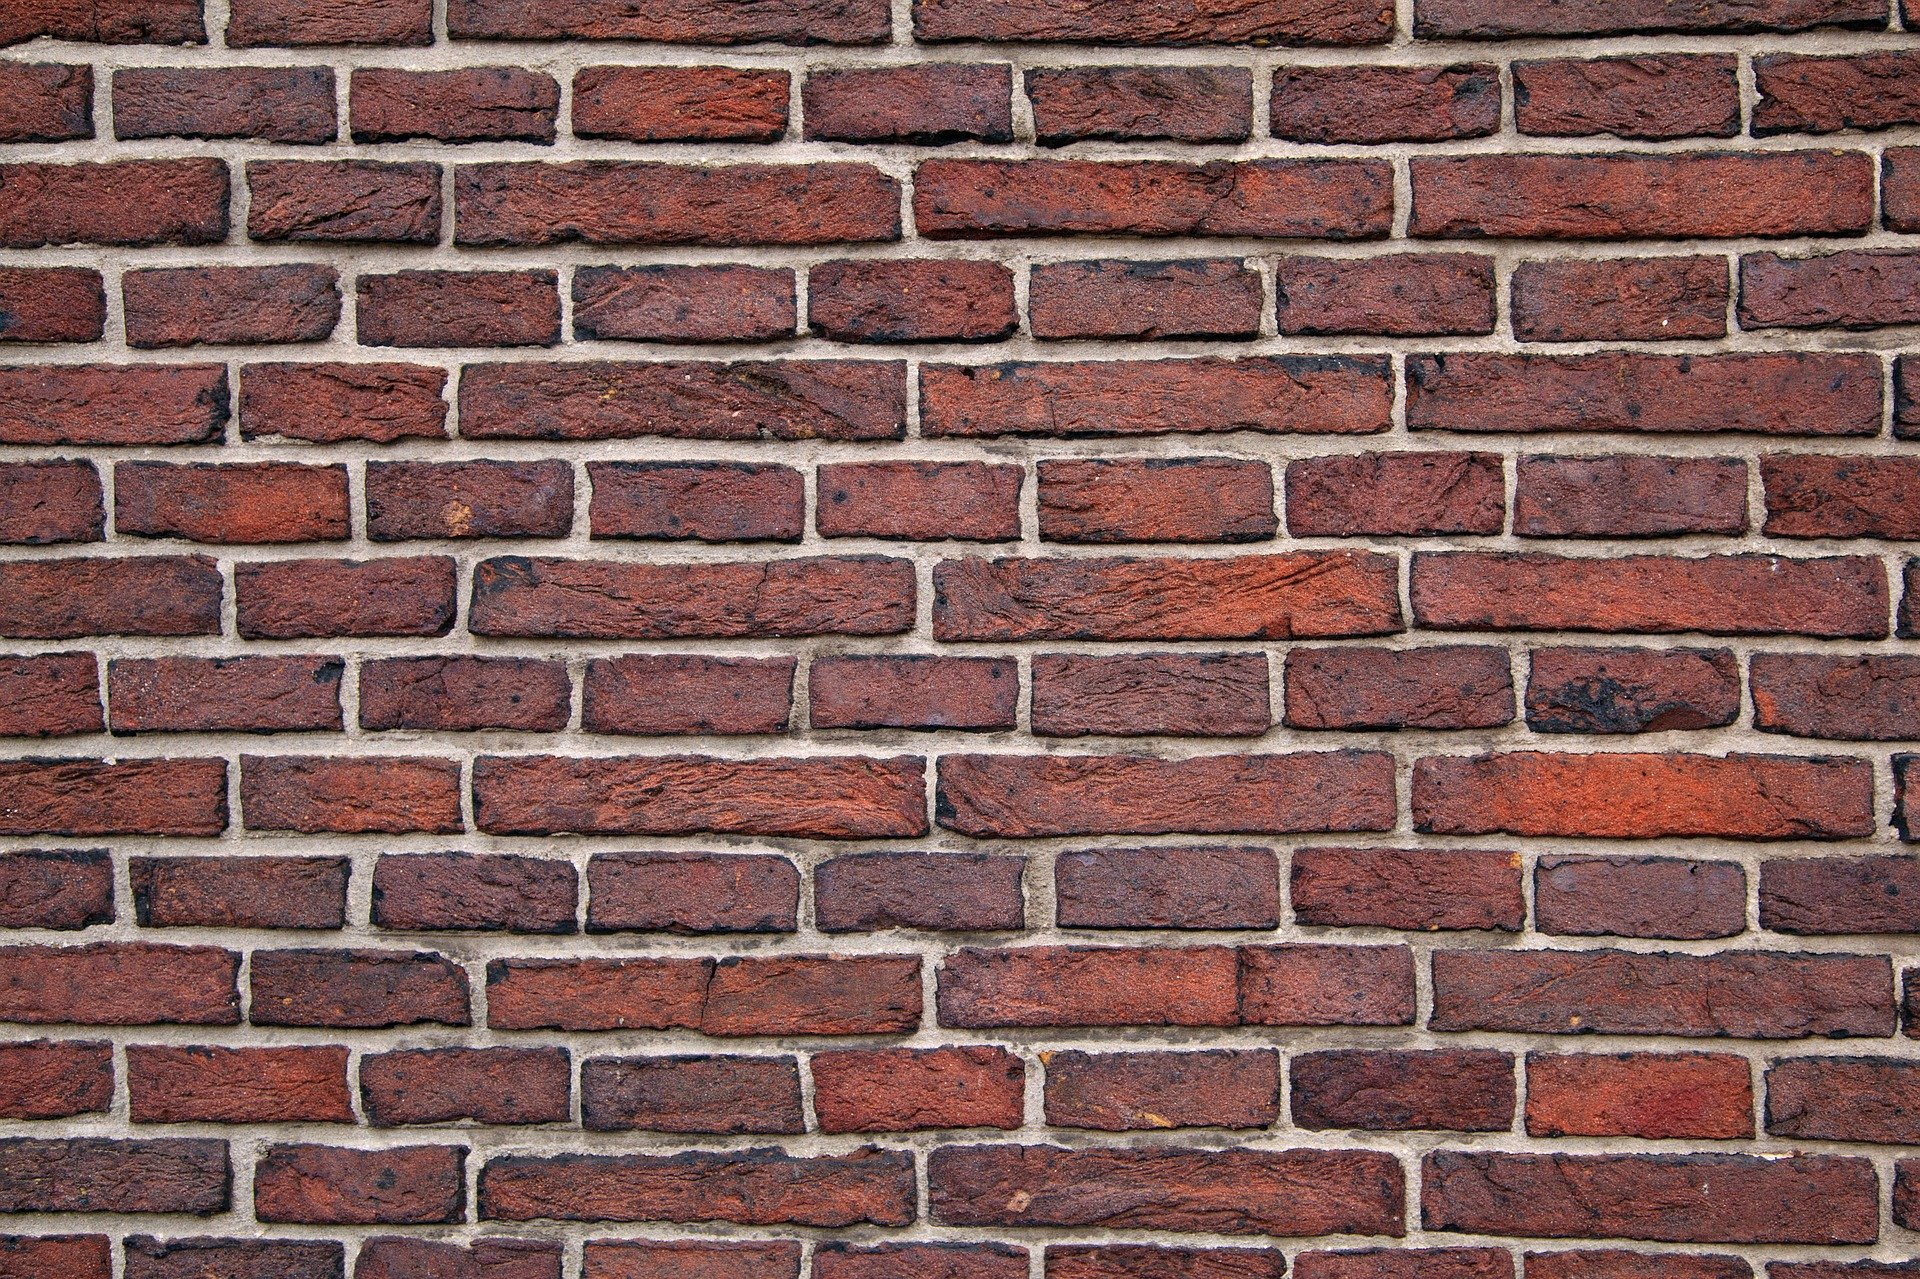 this Riddle App question is about walls and seeing through them; therefore, this image is of a brick wall!